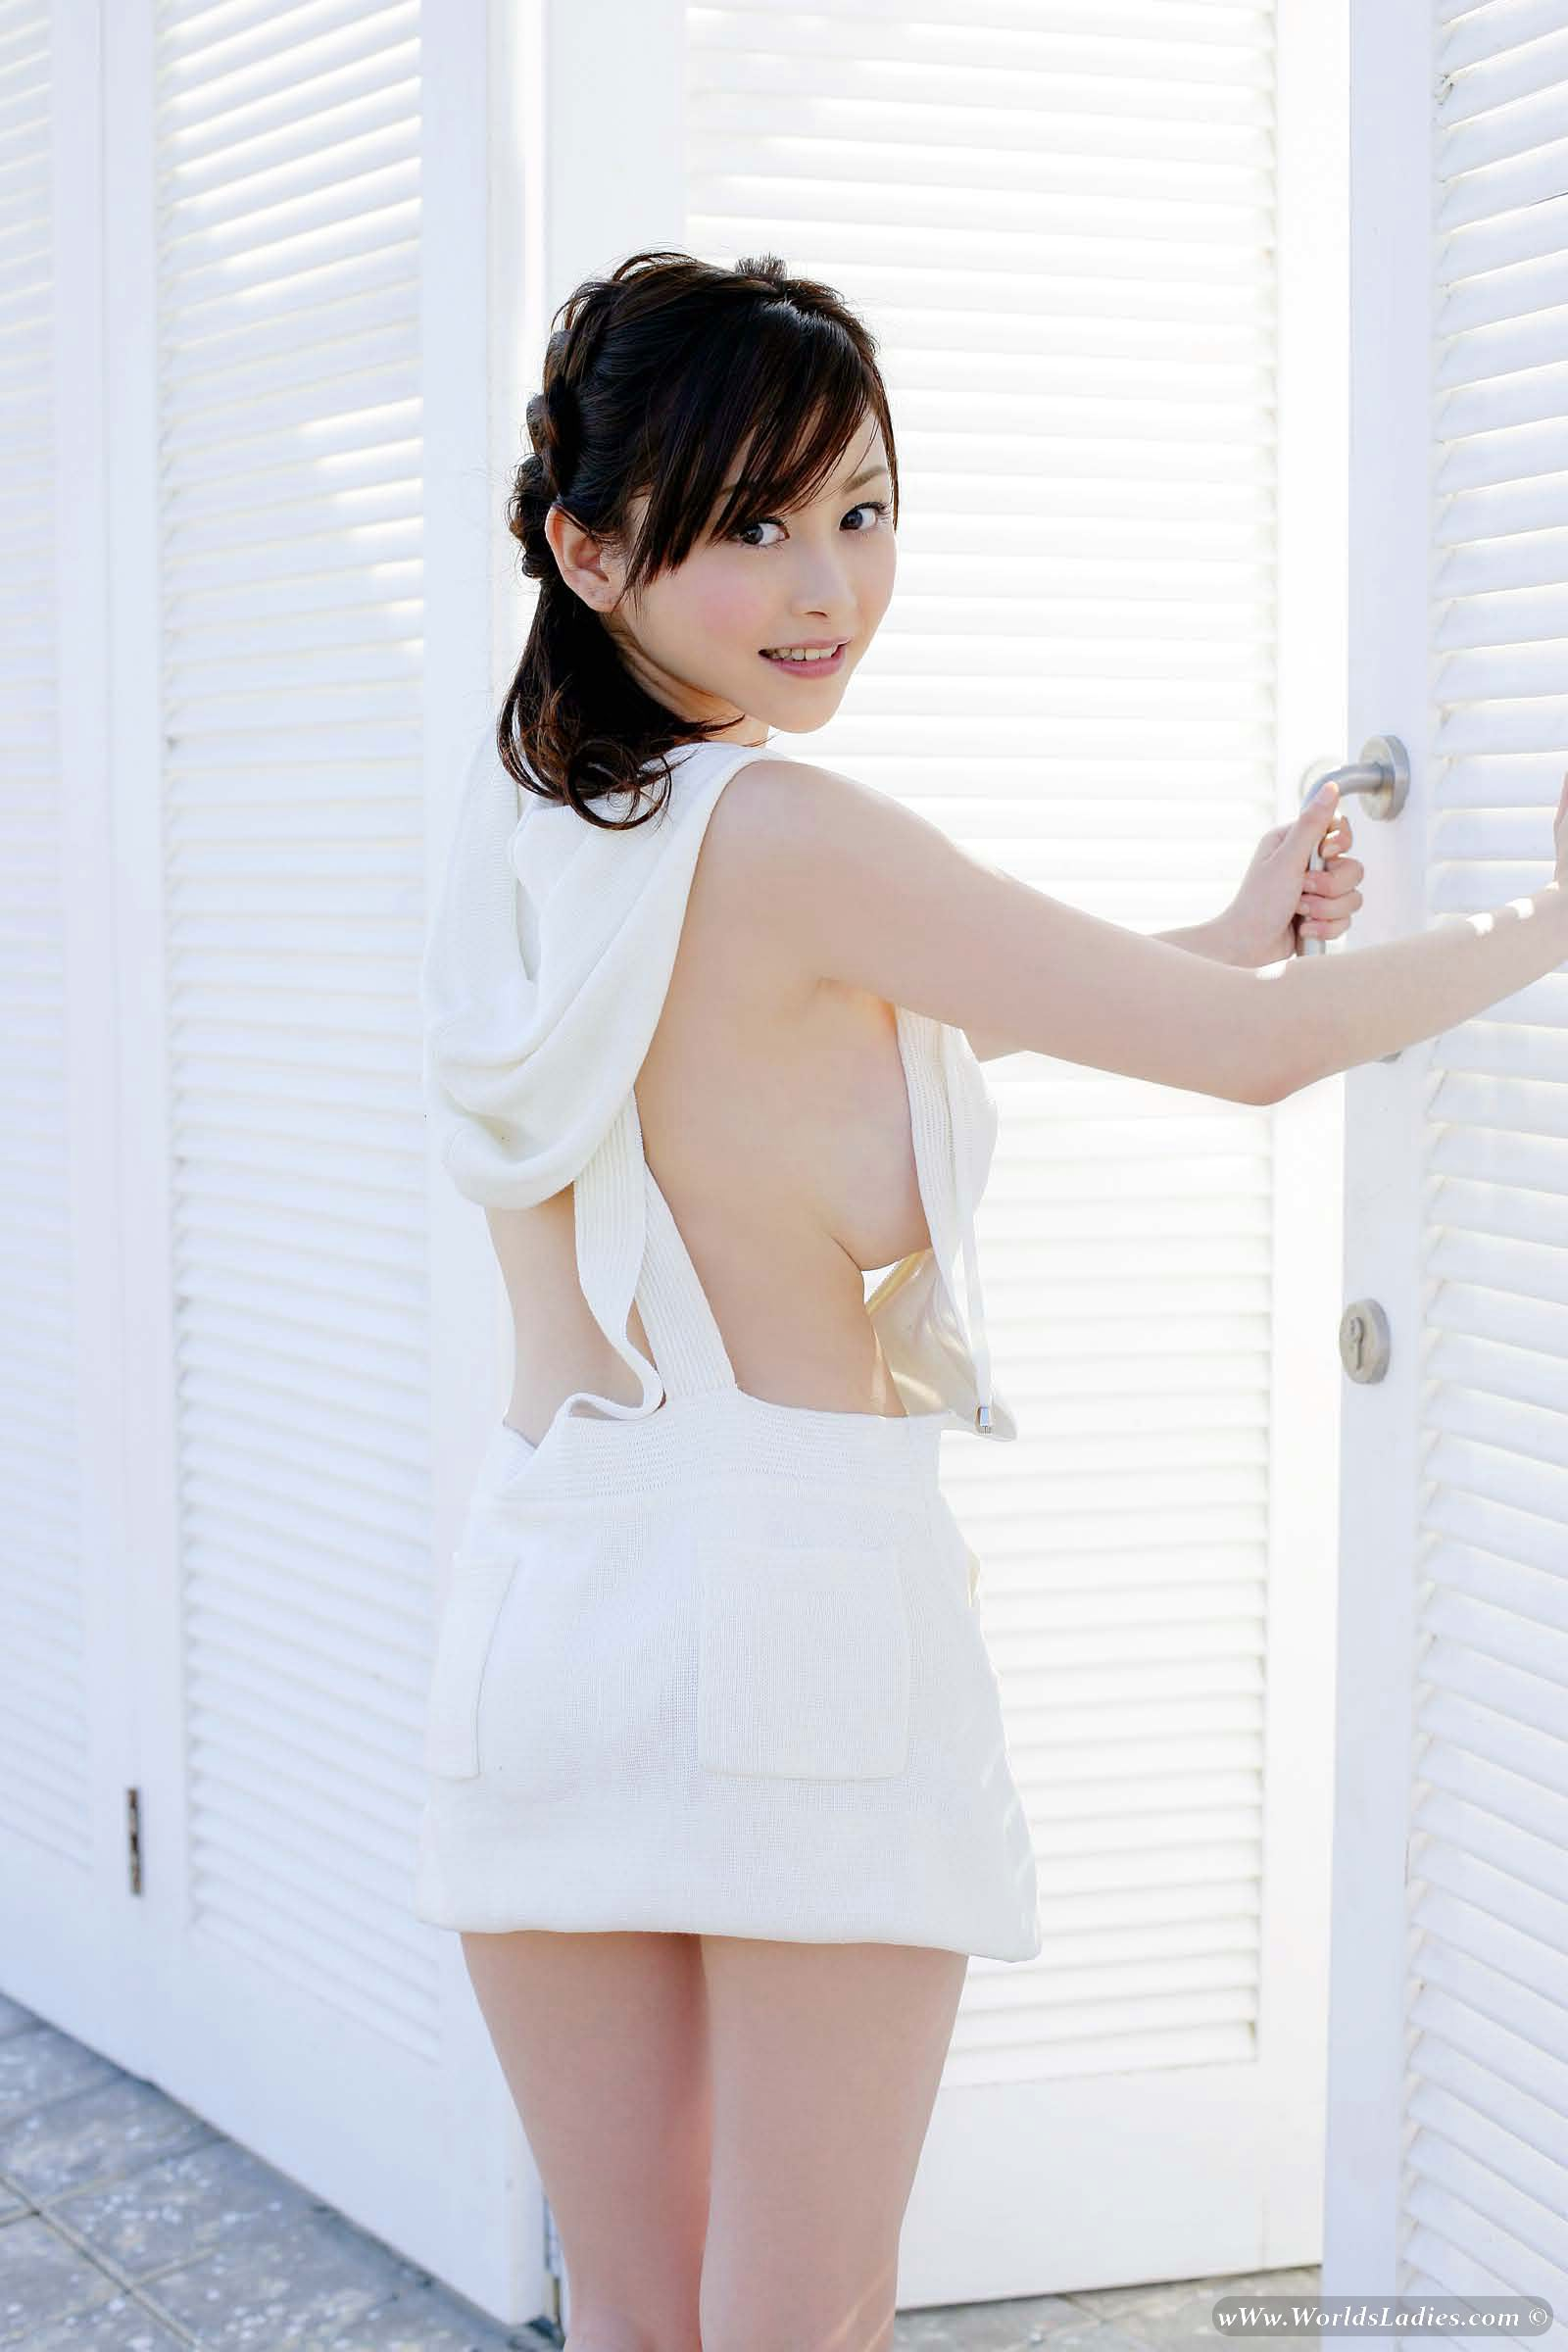 Anri Sugihara Photo Gallery